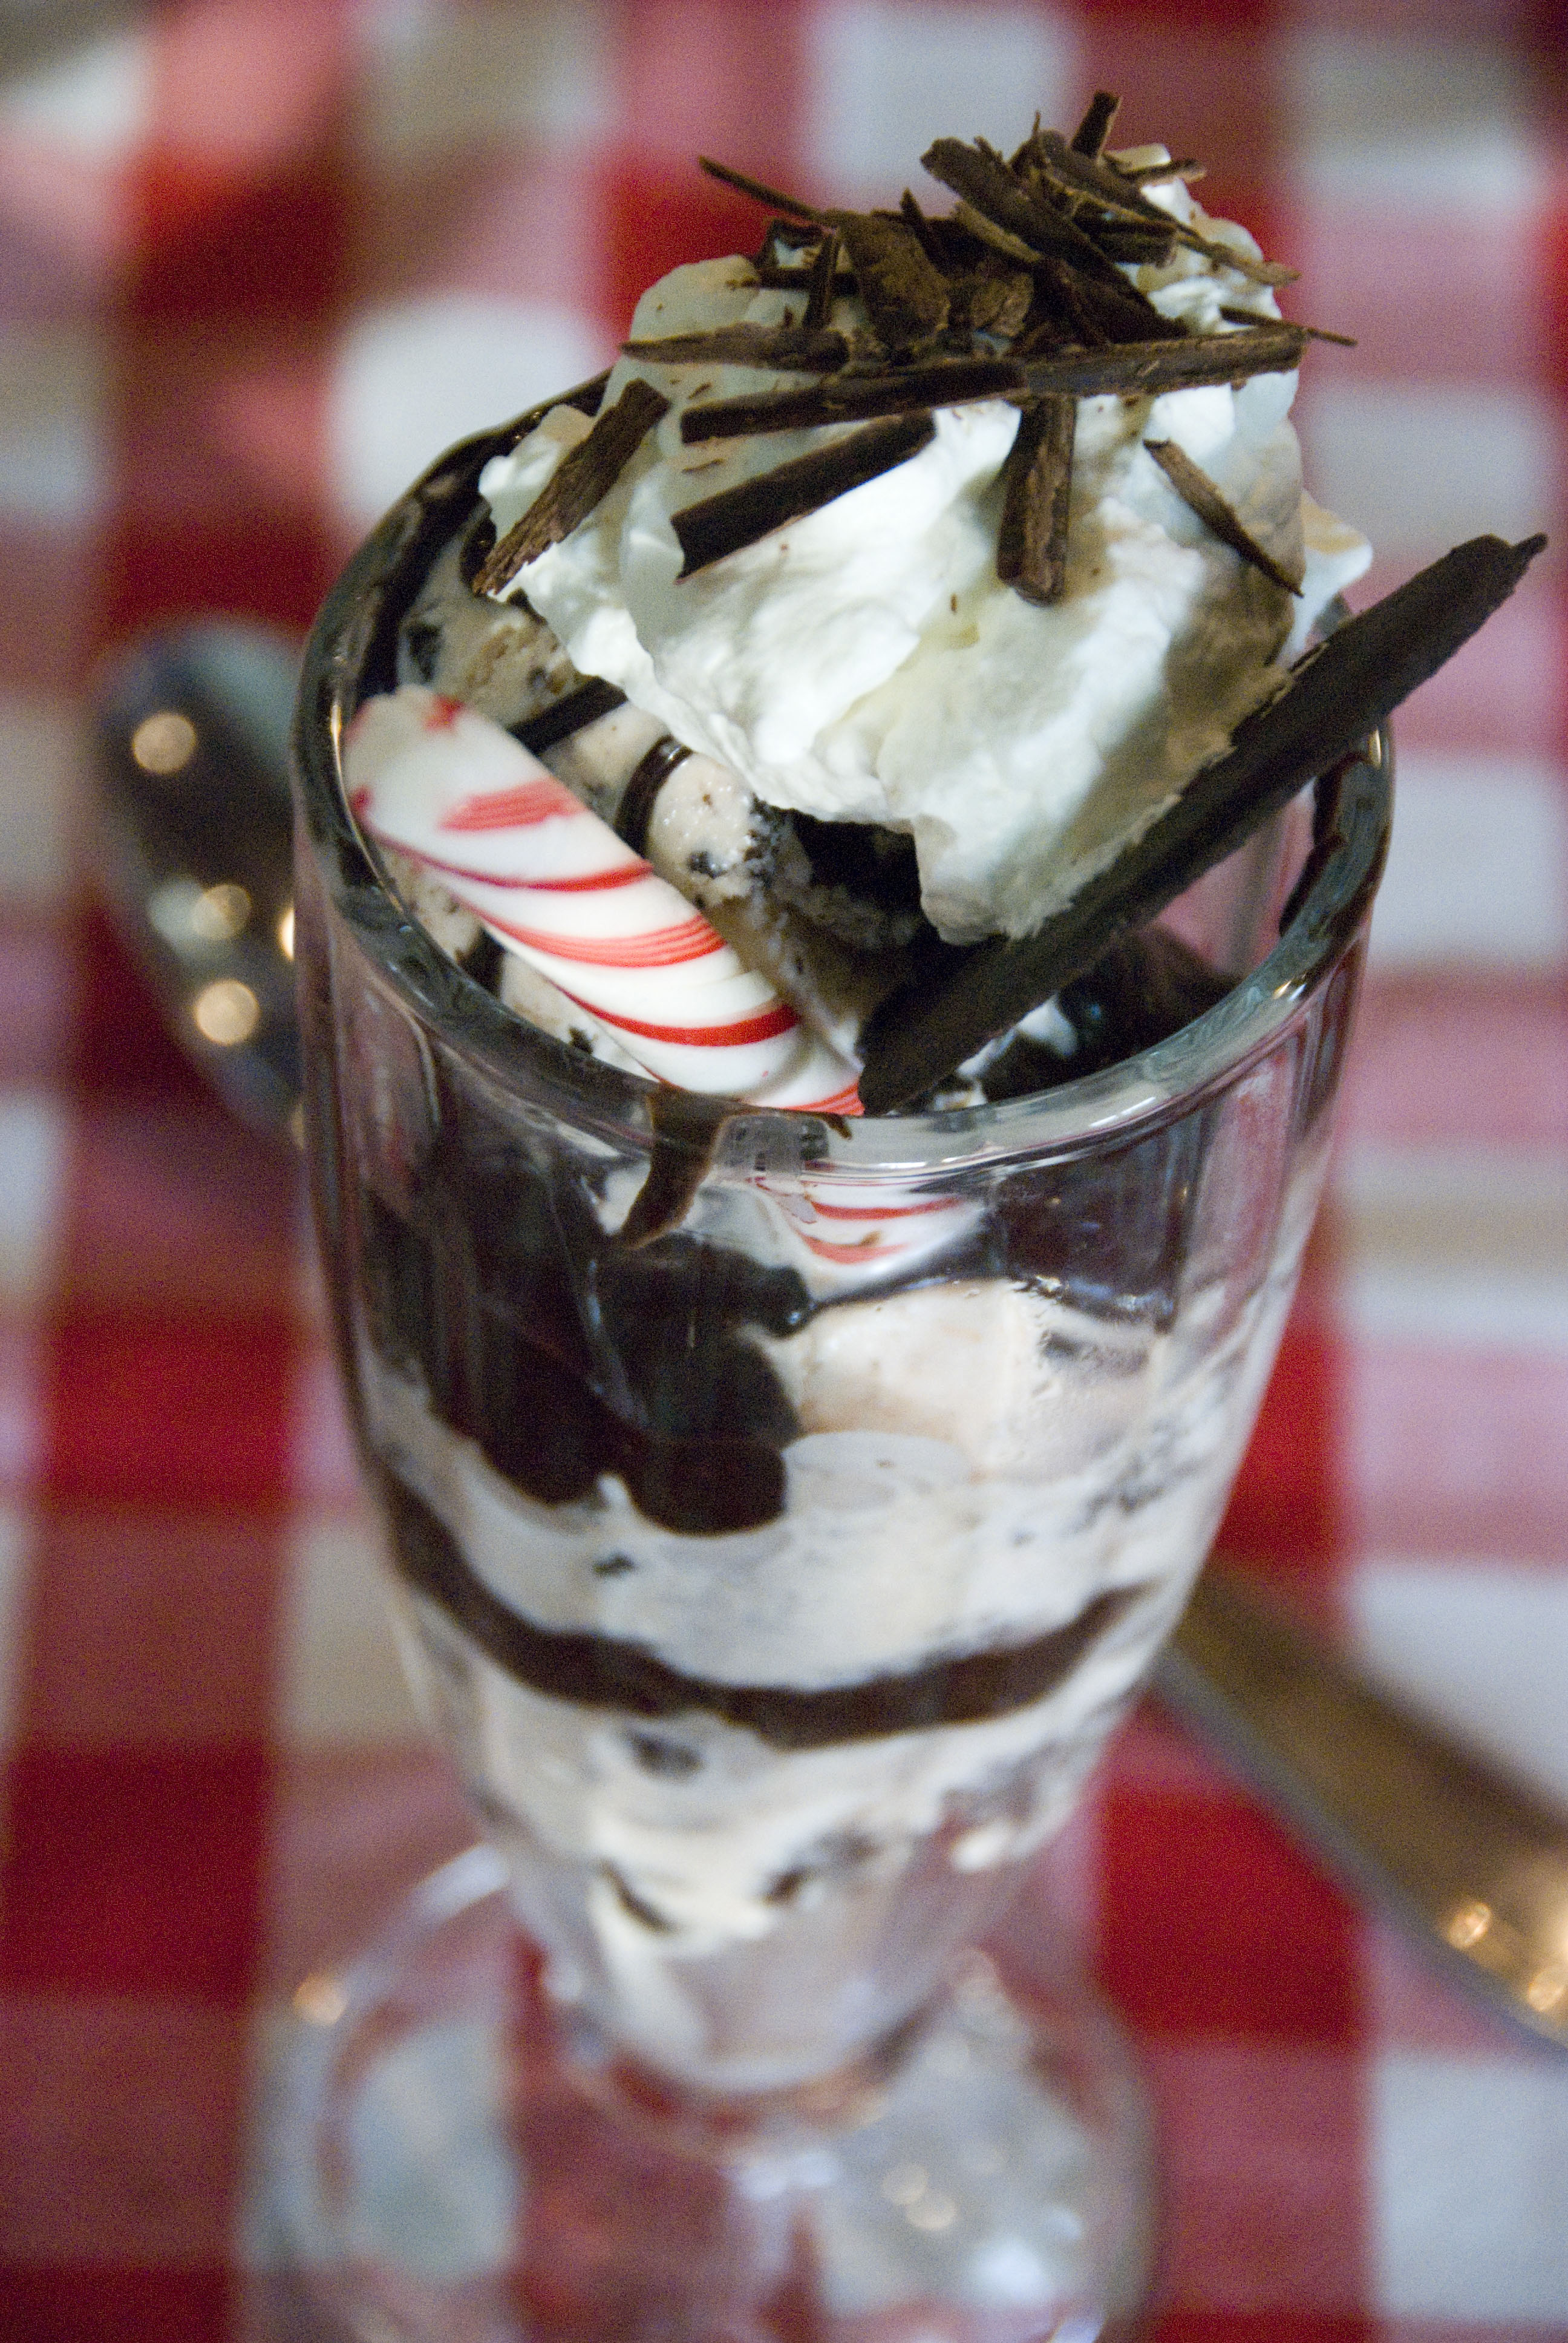 Beauty School Knockout (Peppermint Hot Fudge Sundae)